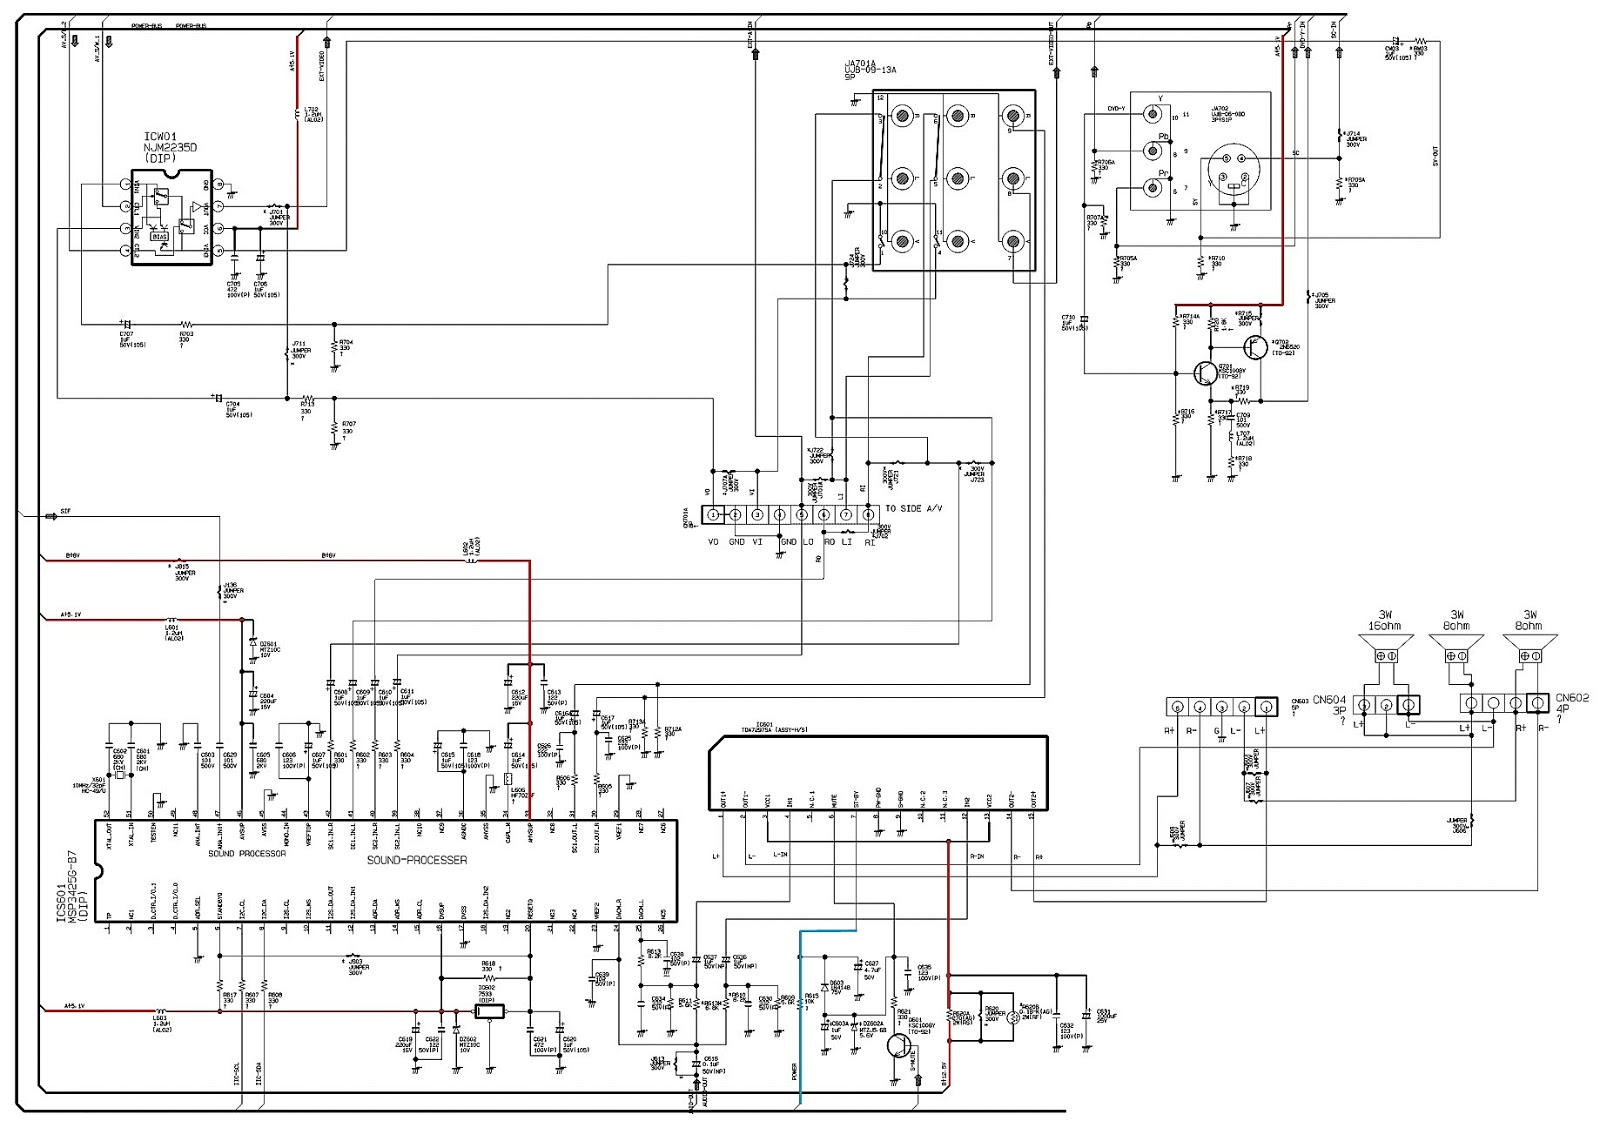 wiring diagram for receiver to samsung tv schematic diagram wiring diagram for receiver to samsung tv [ 1600 x 1121 Pixel ]